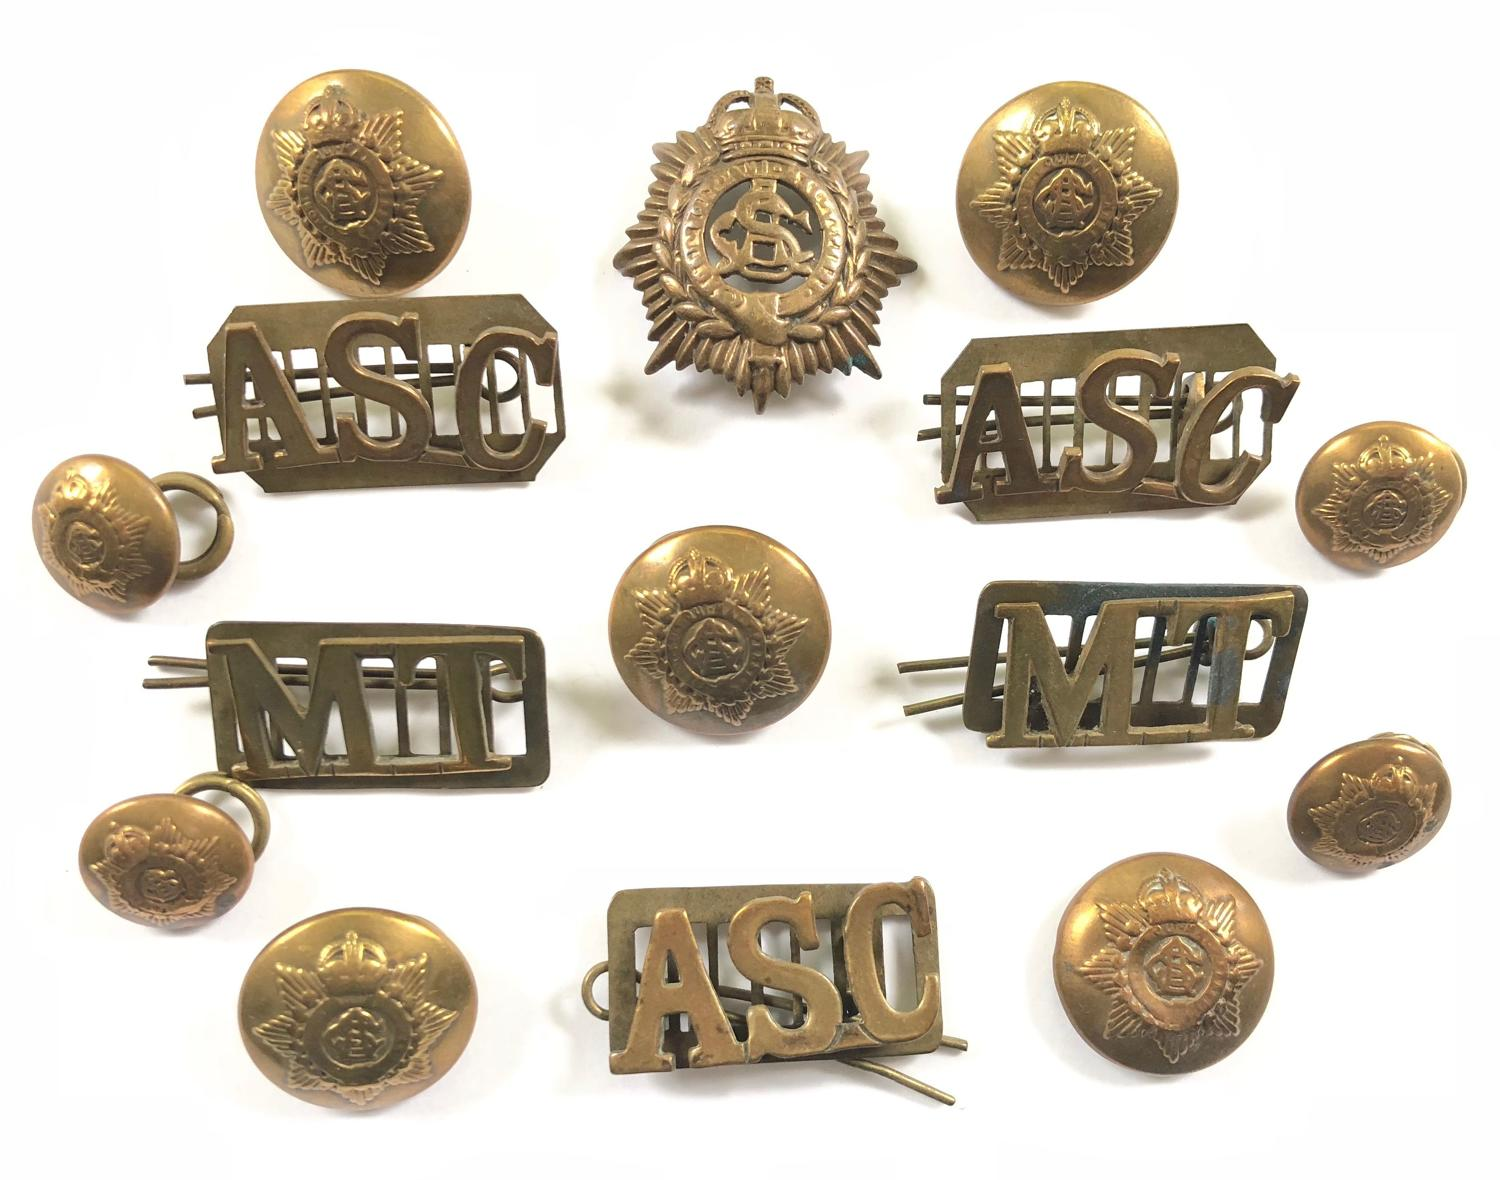 WW1 Army Service Corps Uniform Badges & Buttons.